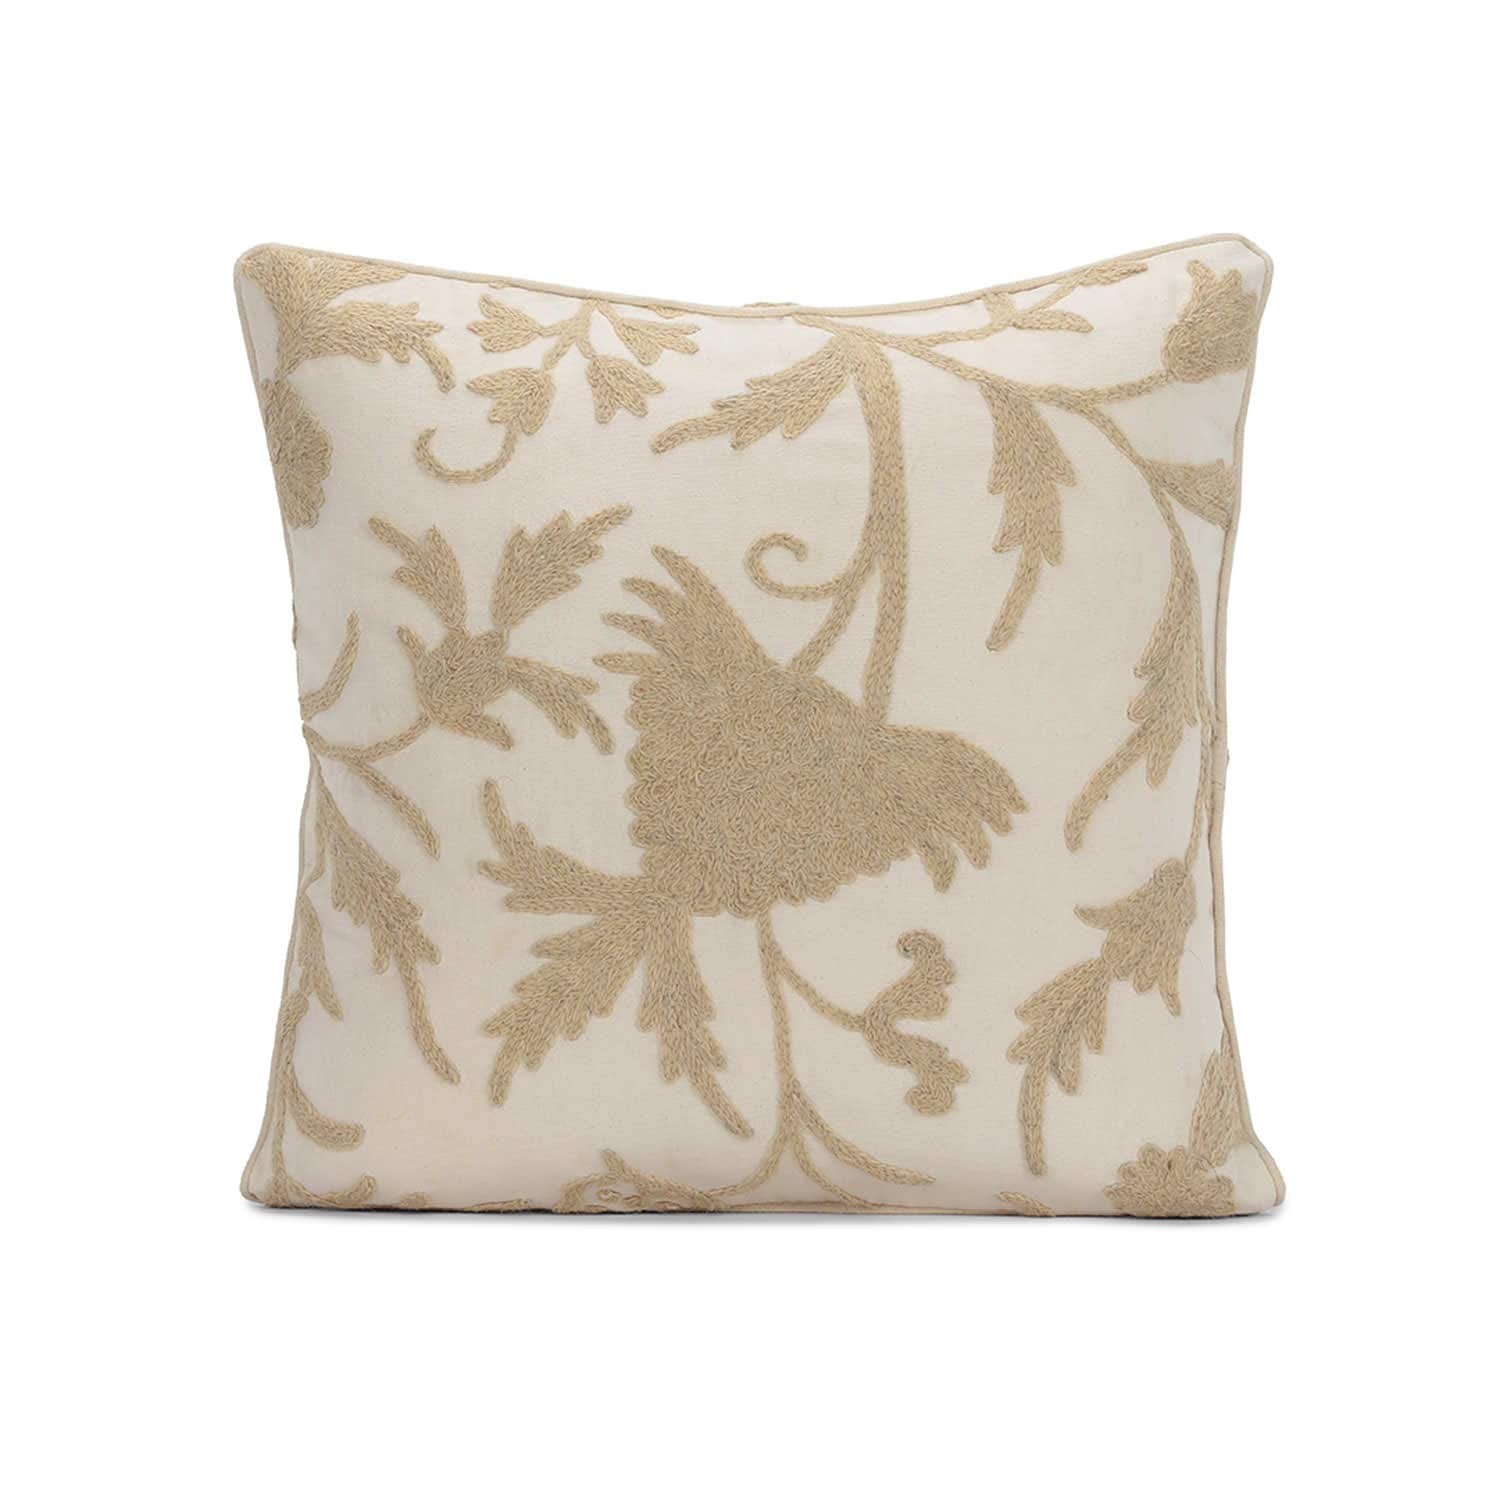 Celine Cream Embroidered Cotton Crewel Cushion Covers - Pair